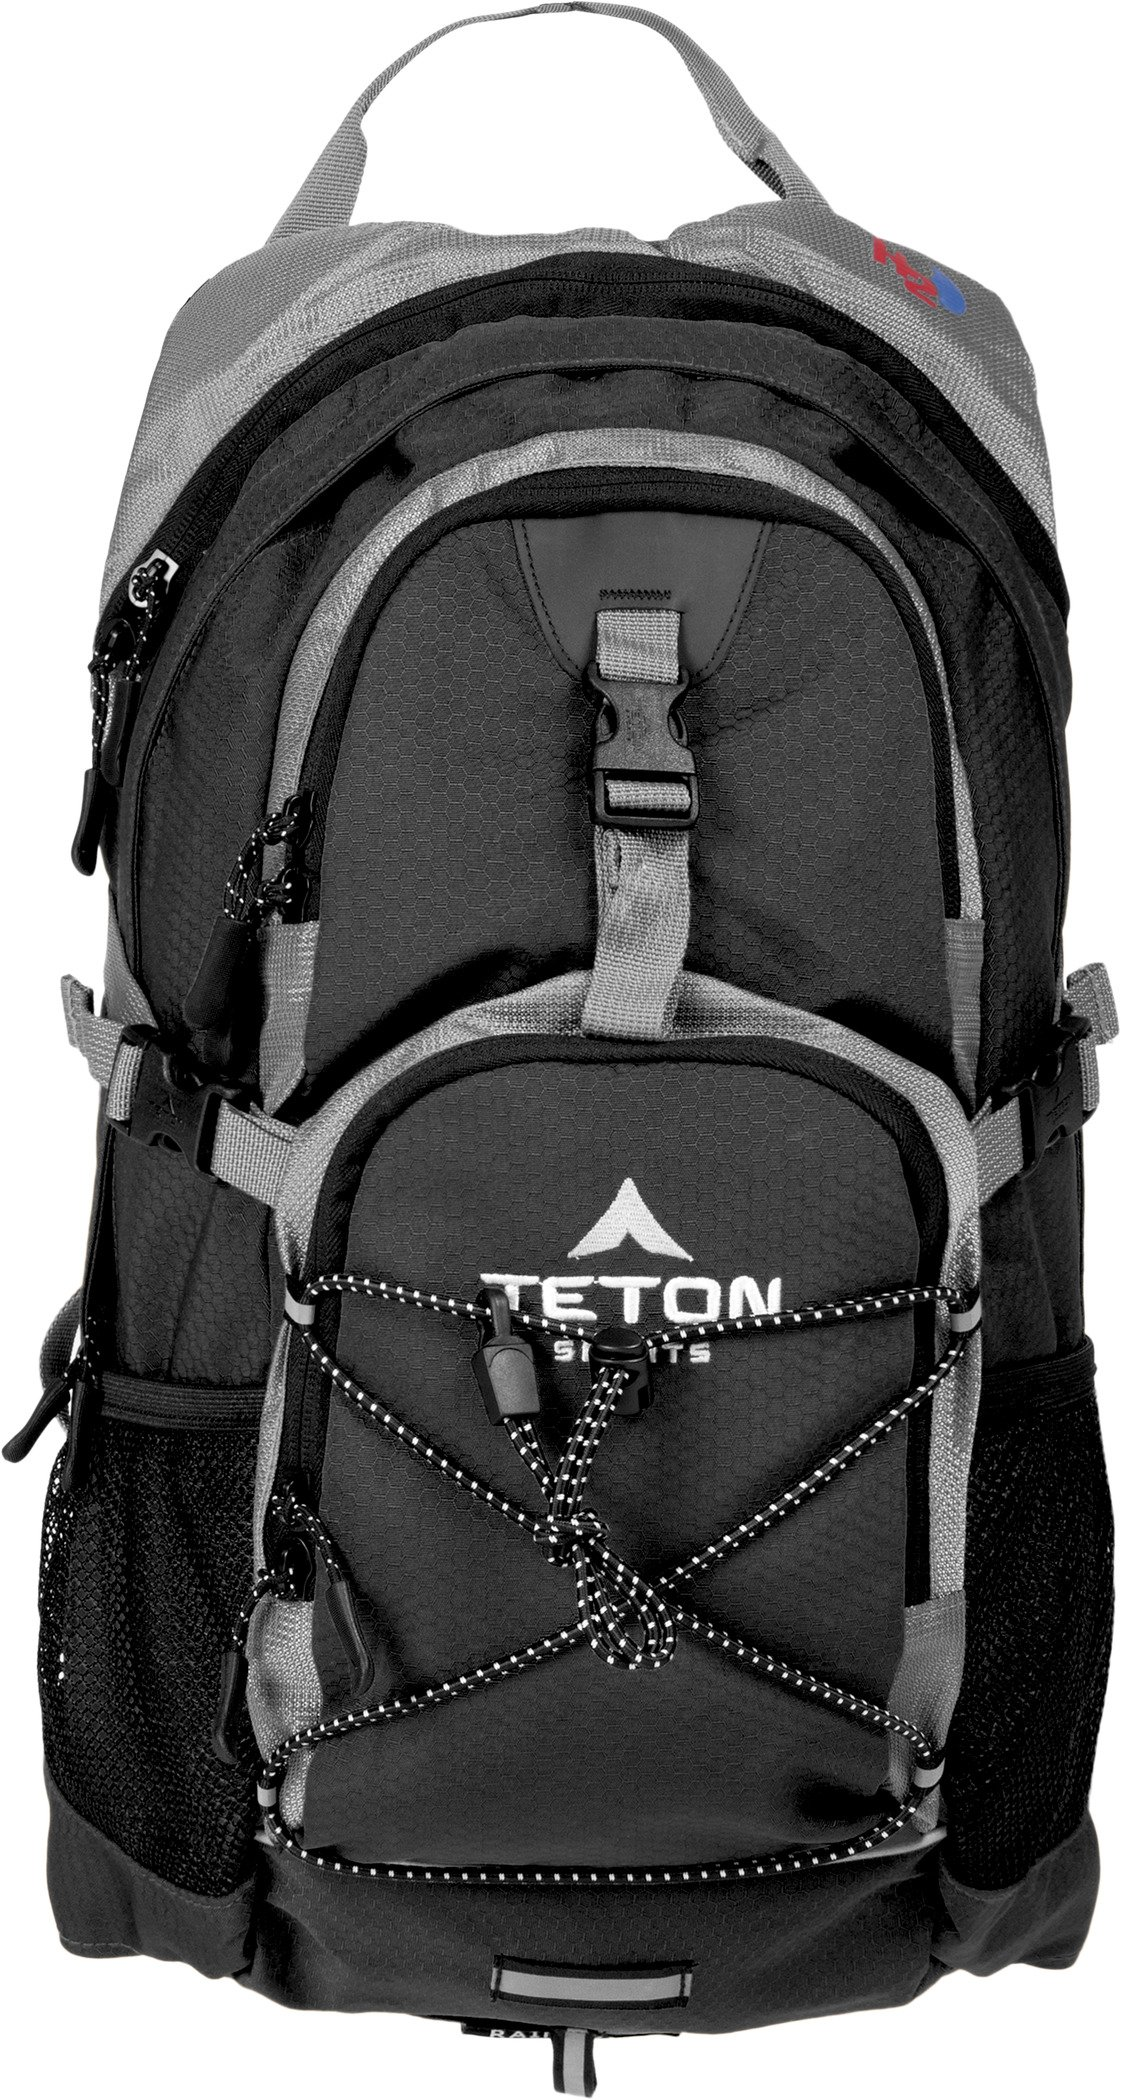 TETON Sports Oasis 1100 Hydration Pack | Free 2-Liter Hydration Bladder | Backpack design great for Hiking, Running, Cycling, and Climbing | Black by TETON Sports